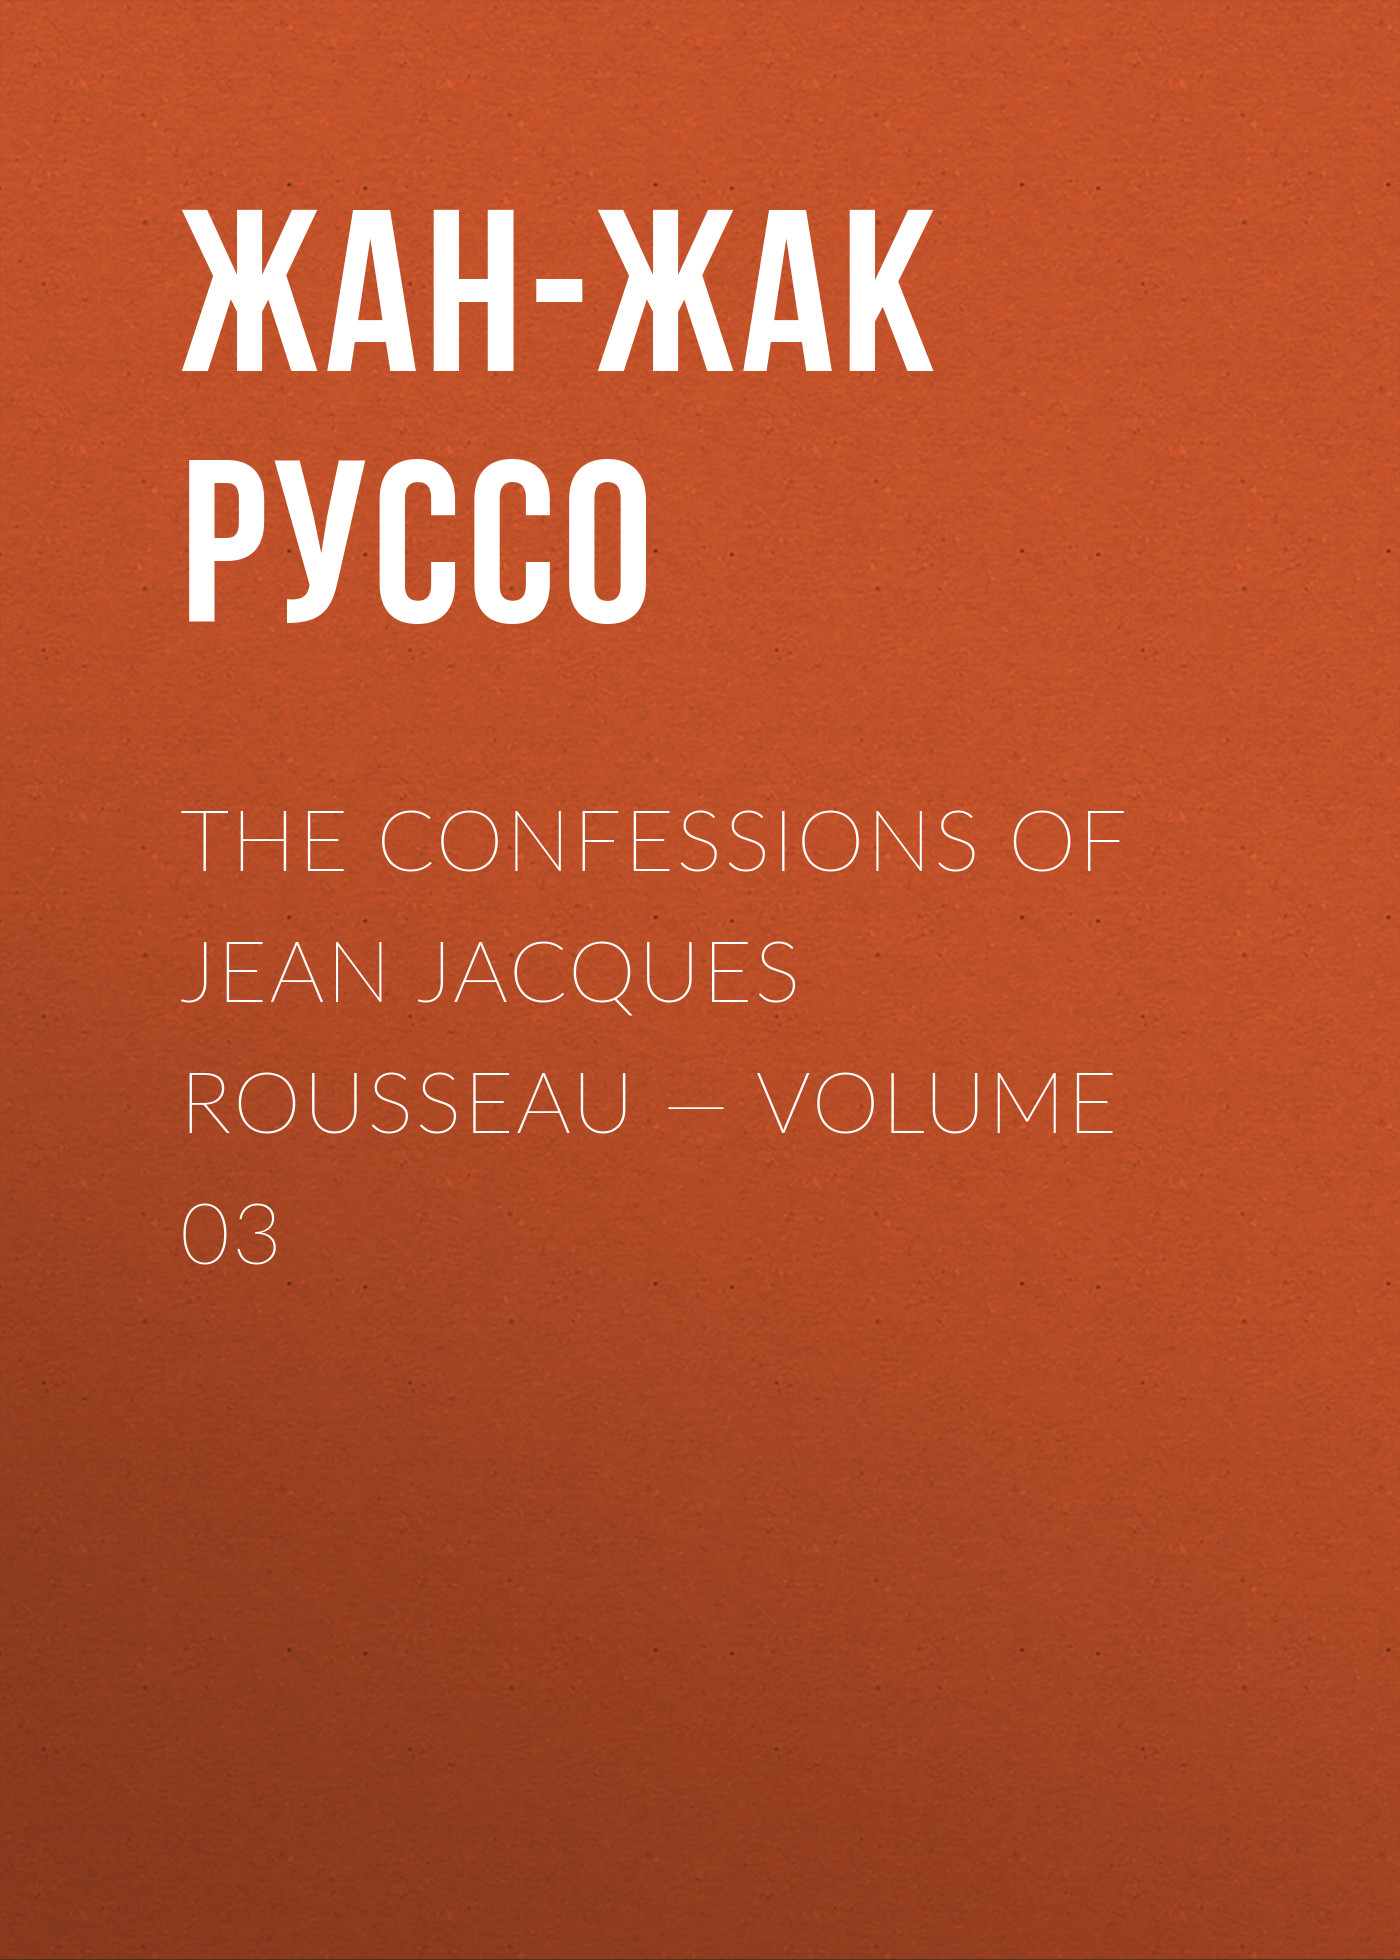 Жан-Жак Руссо The Confessions of Jean Jacques Rousseau — Volume 03